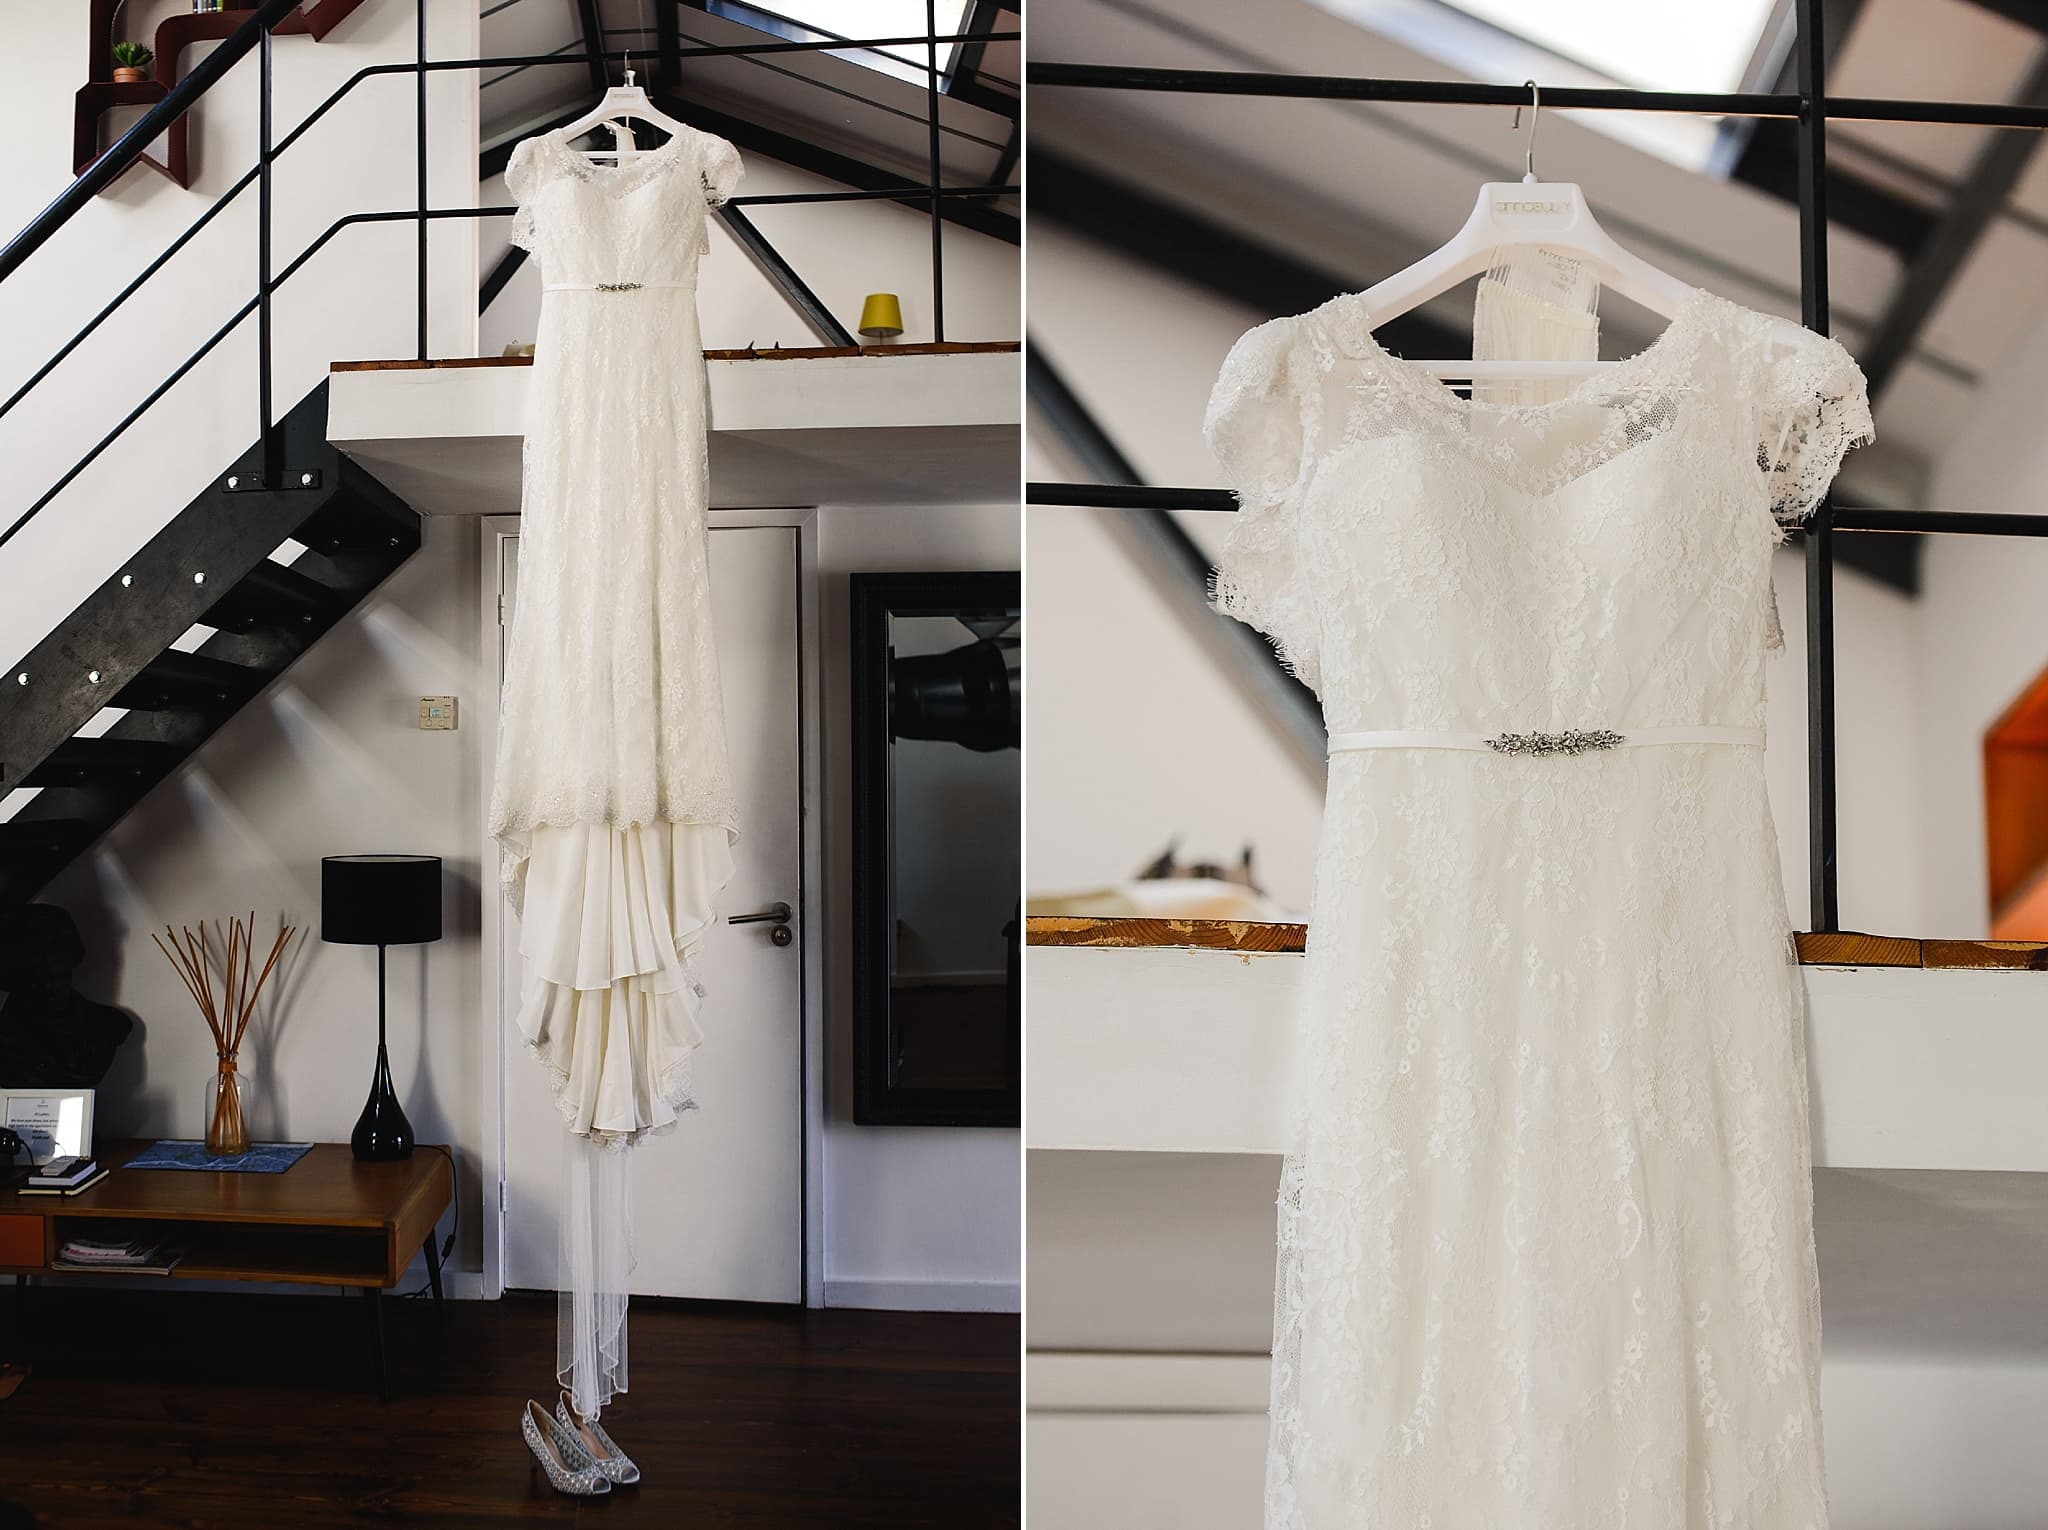 Wedding dress hanging up in the apartment at the Paintwork's Bristol